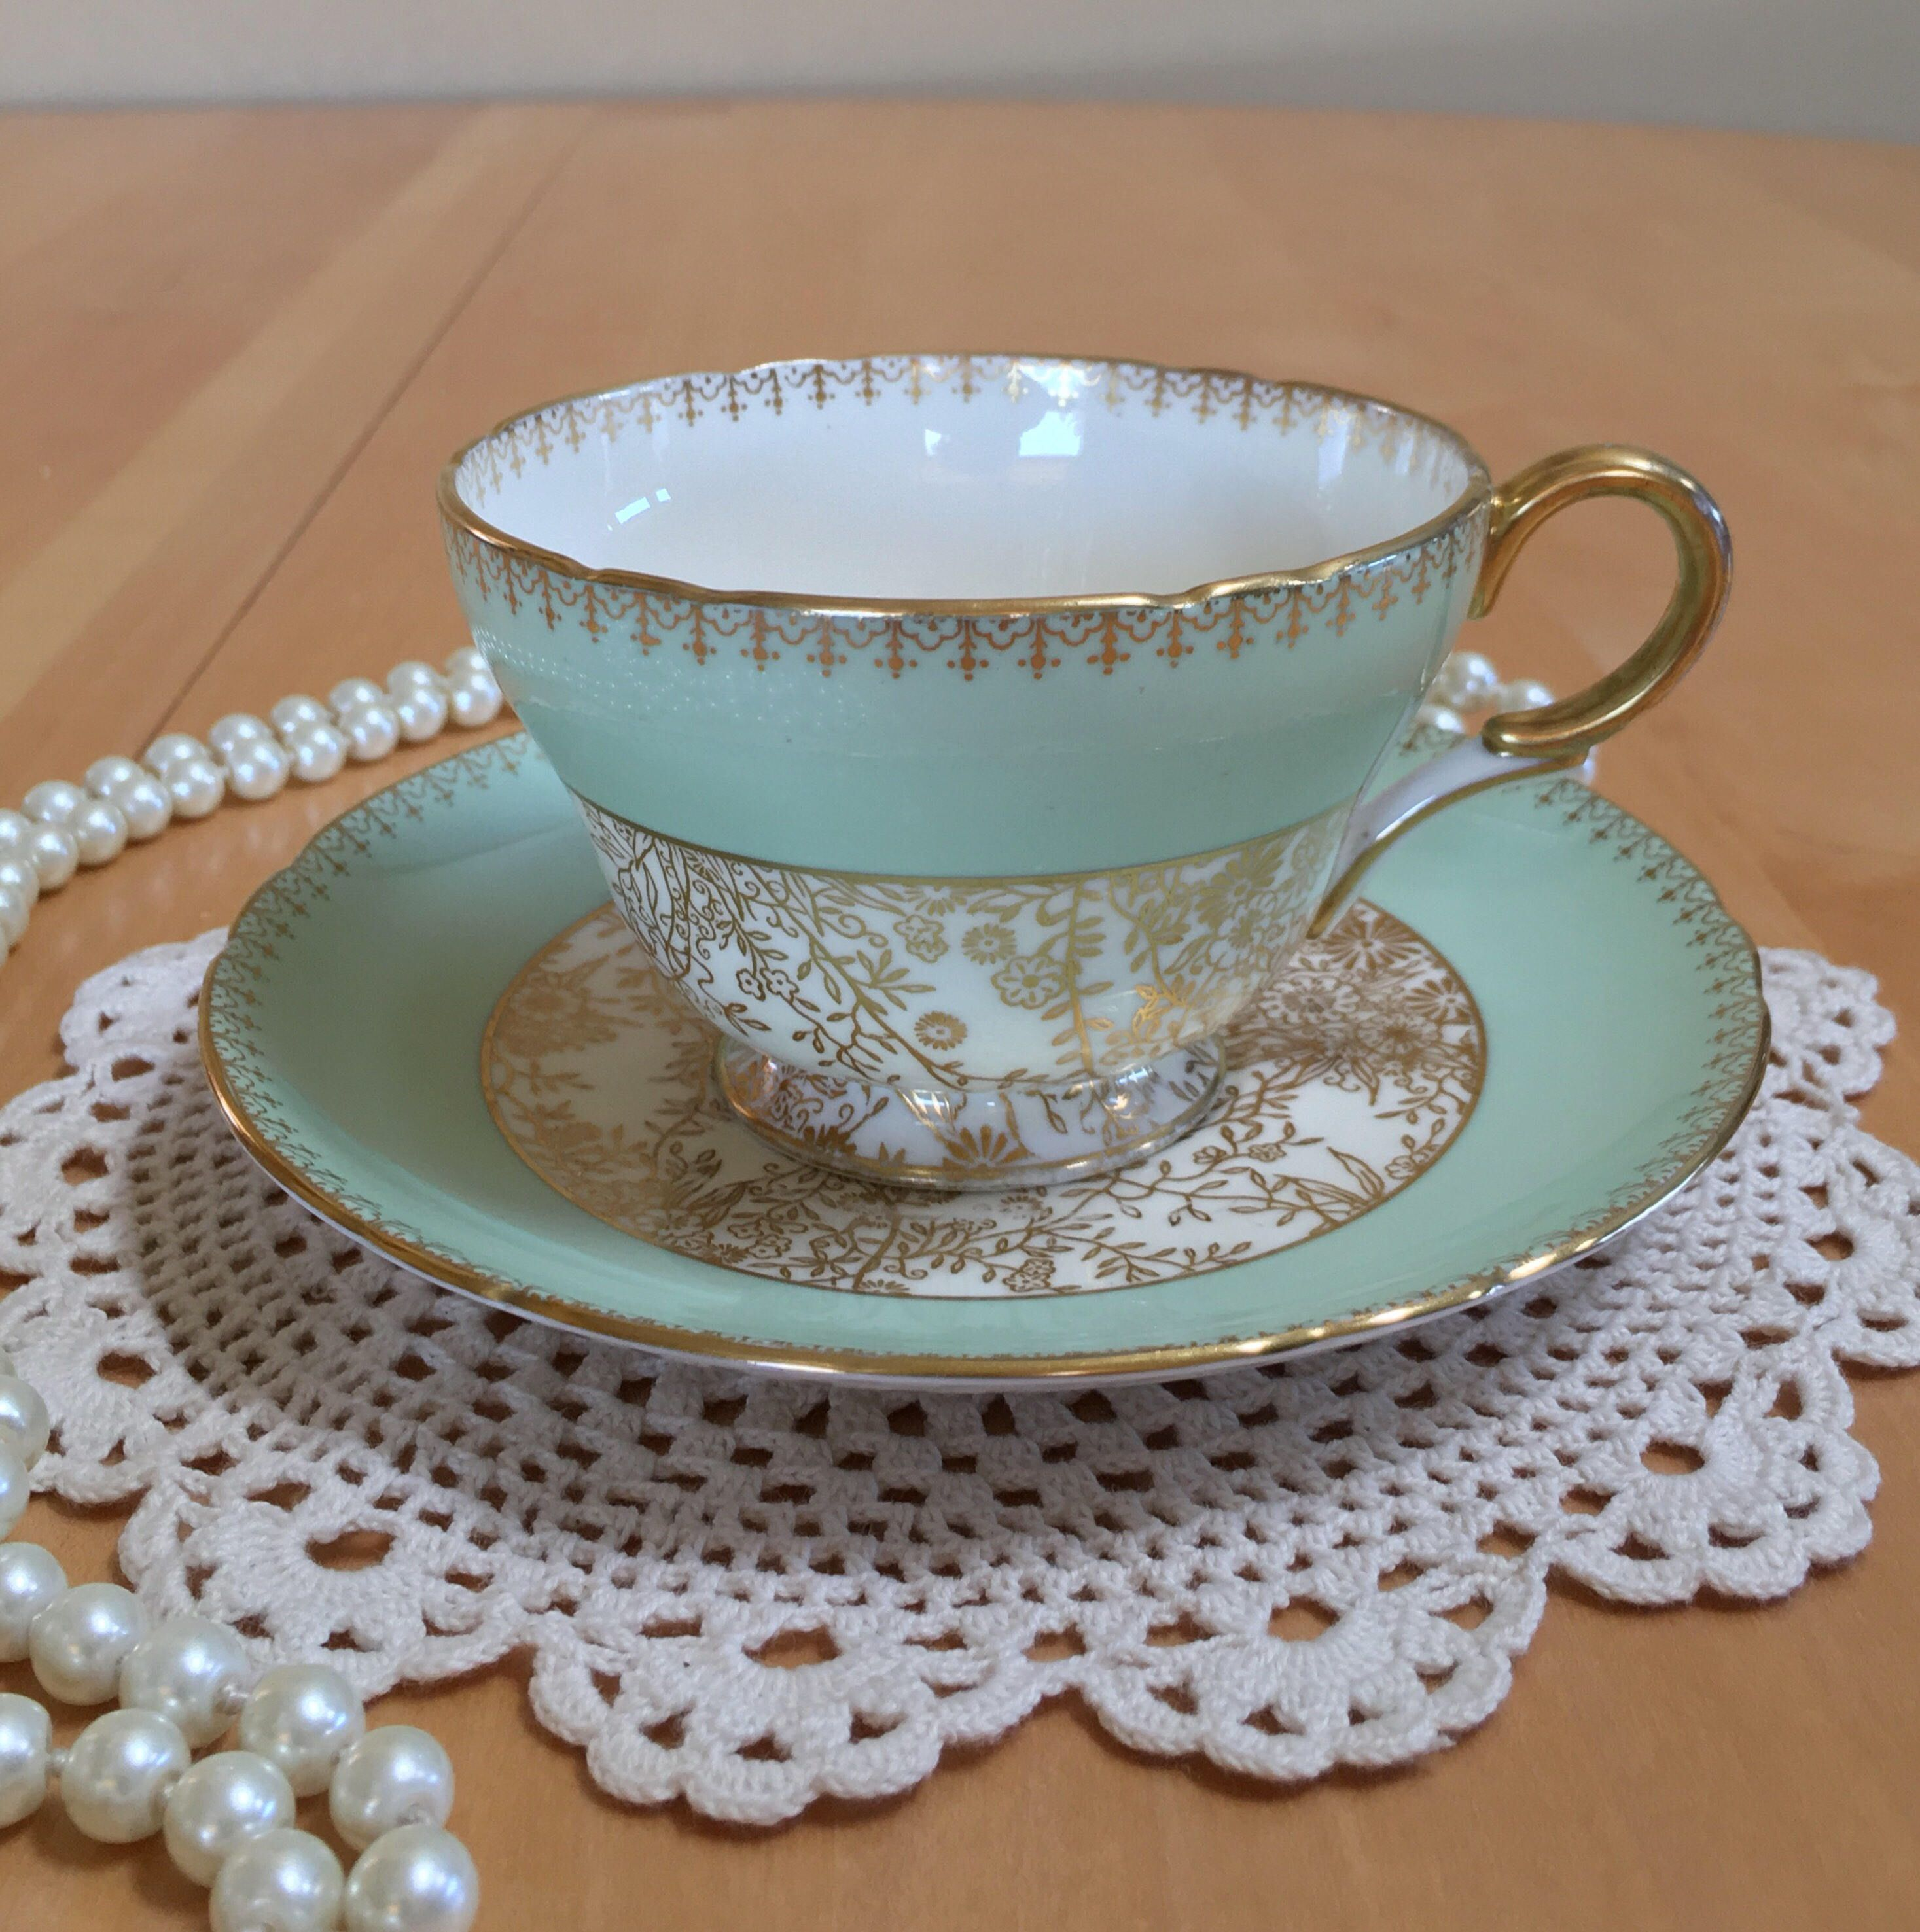 Vintage Shelley Teacup And Saucer Sage Green With Gold Florals